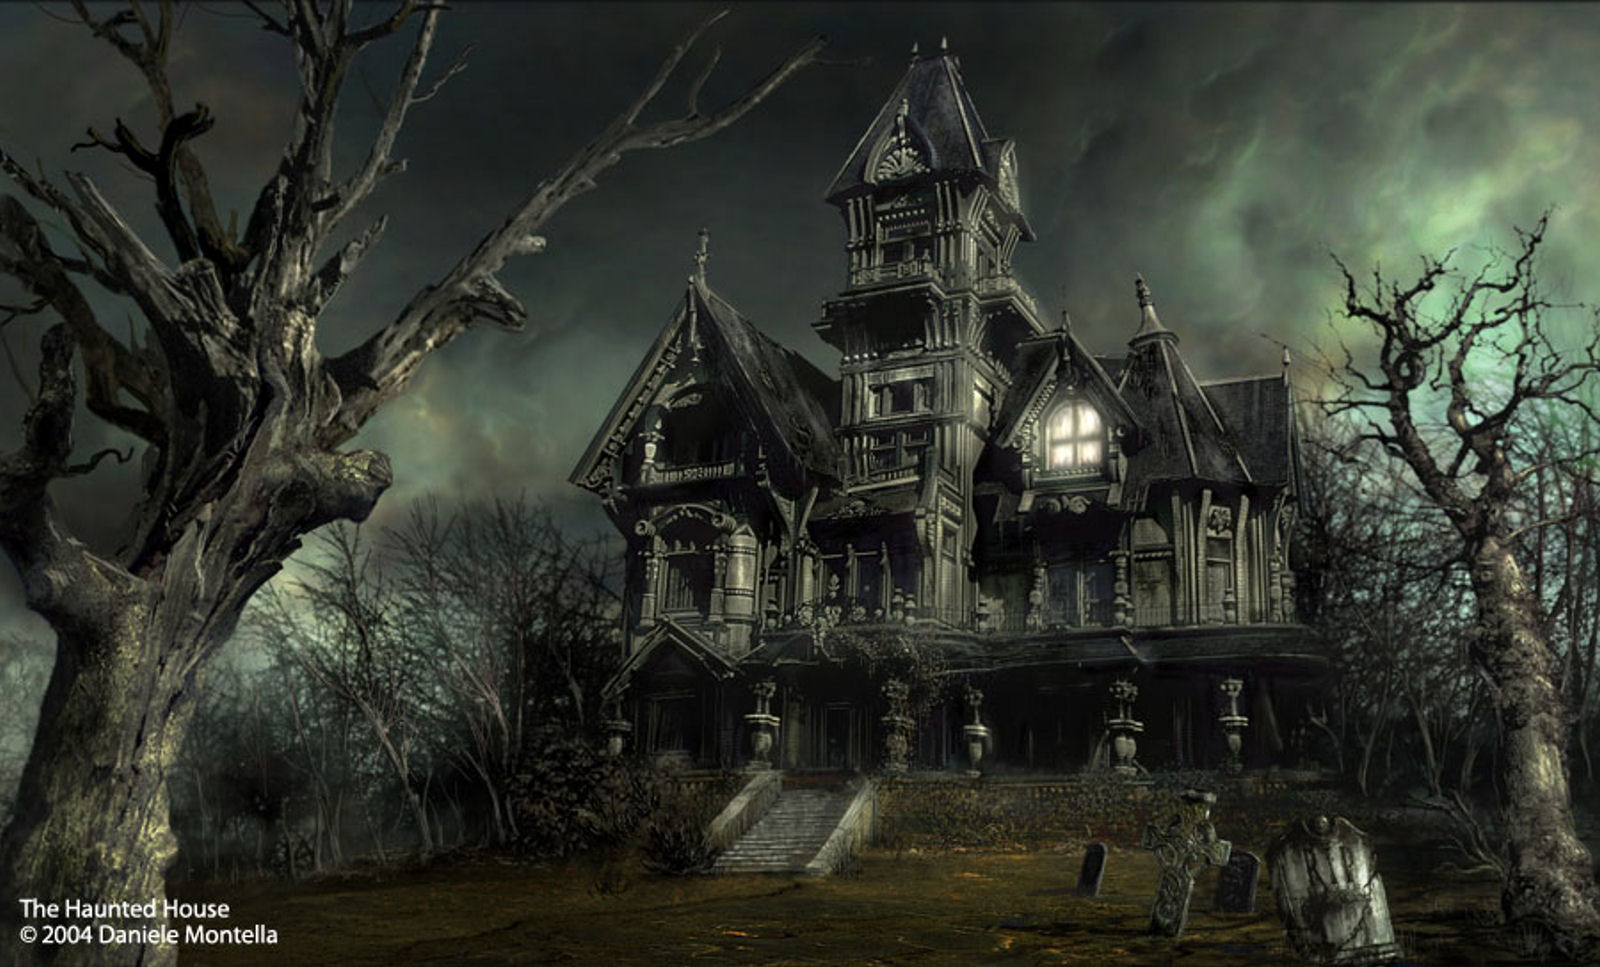 Haunted Mansion Desktop Wallpaper Images amp Pictures   Becuo 1600x967